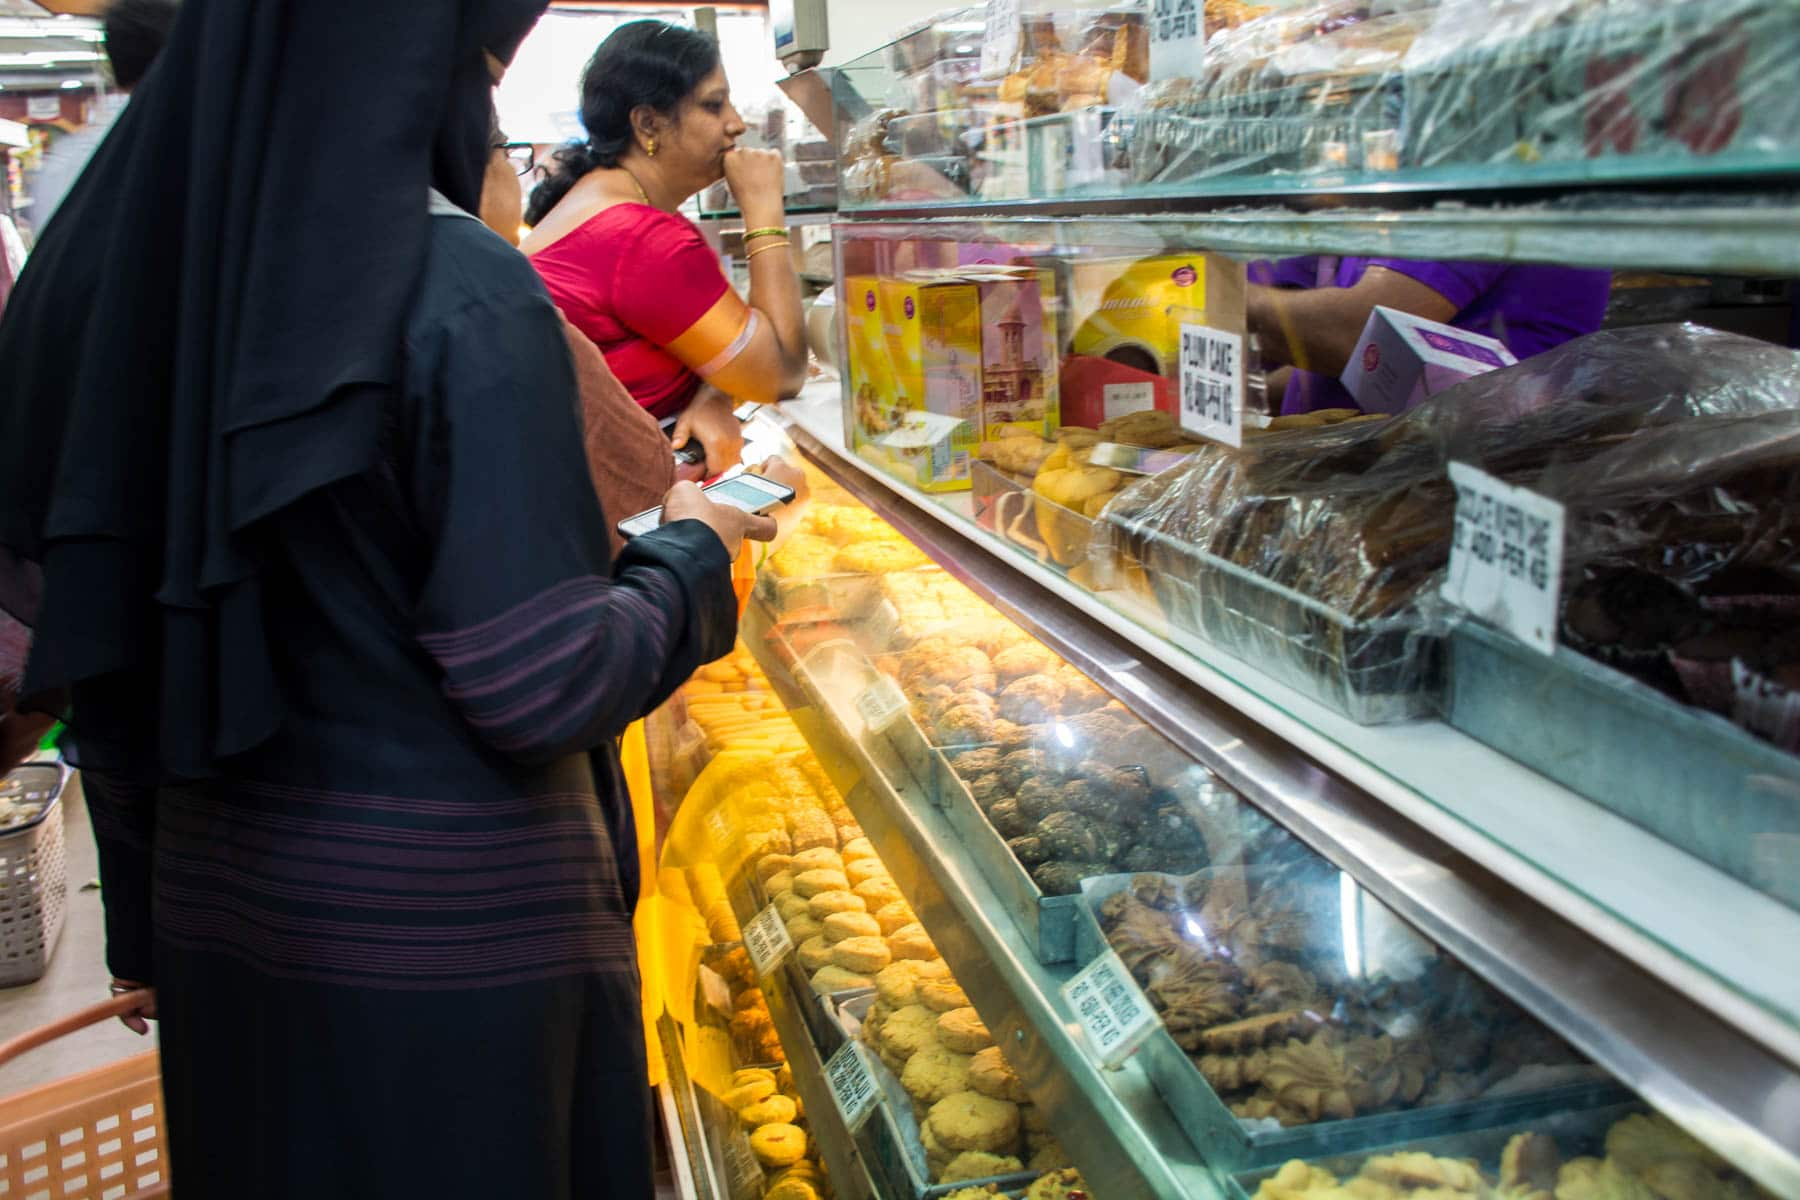 Where and what to eat in Hyderabad's Old City, India - Karachi bakery biscuits - Lost With Purpose